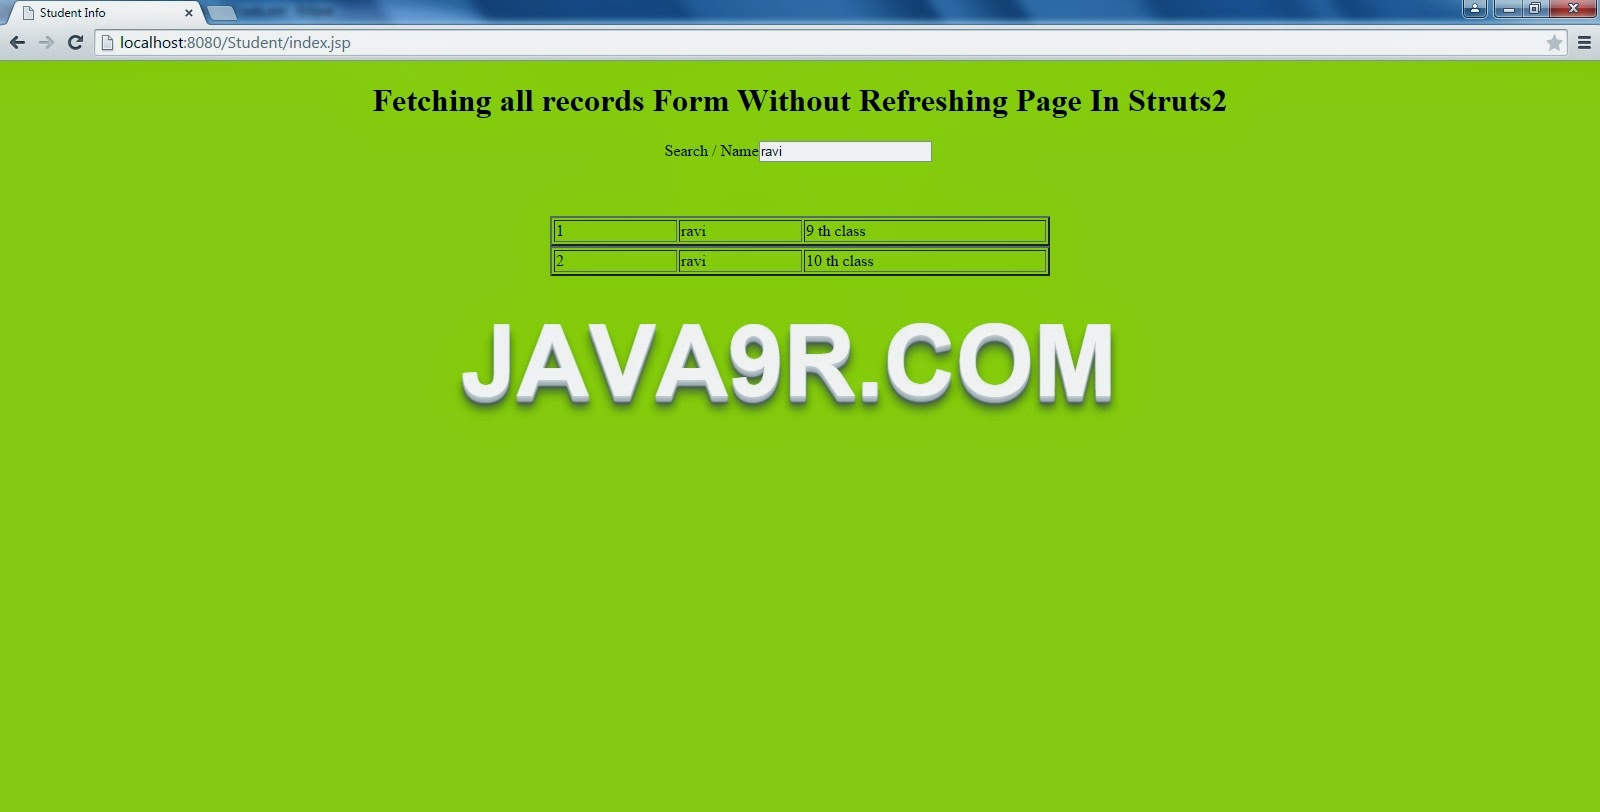 Java9R: Fetching all records Form Without Refreshing Page In Struts2